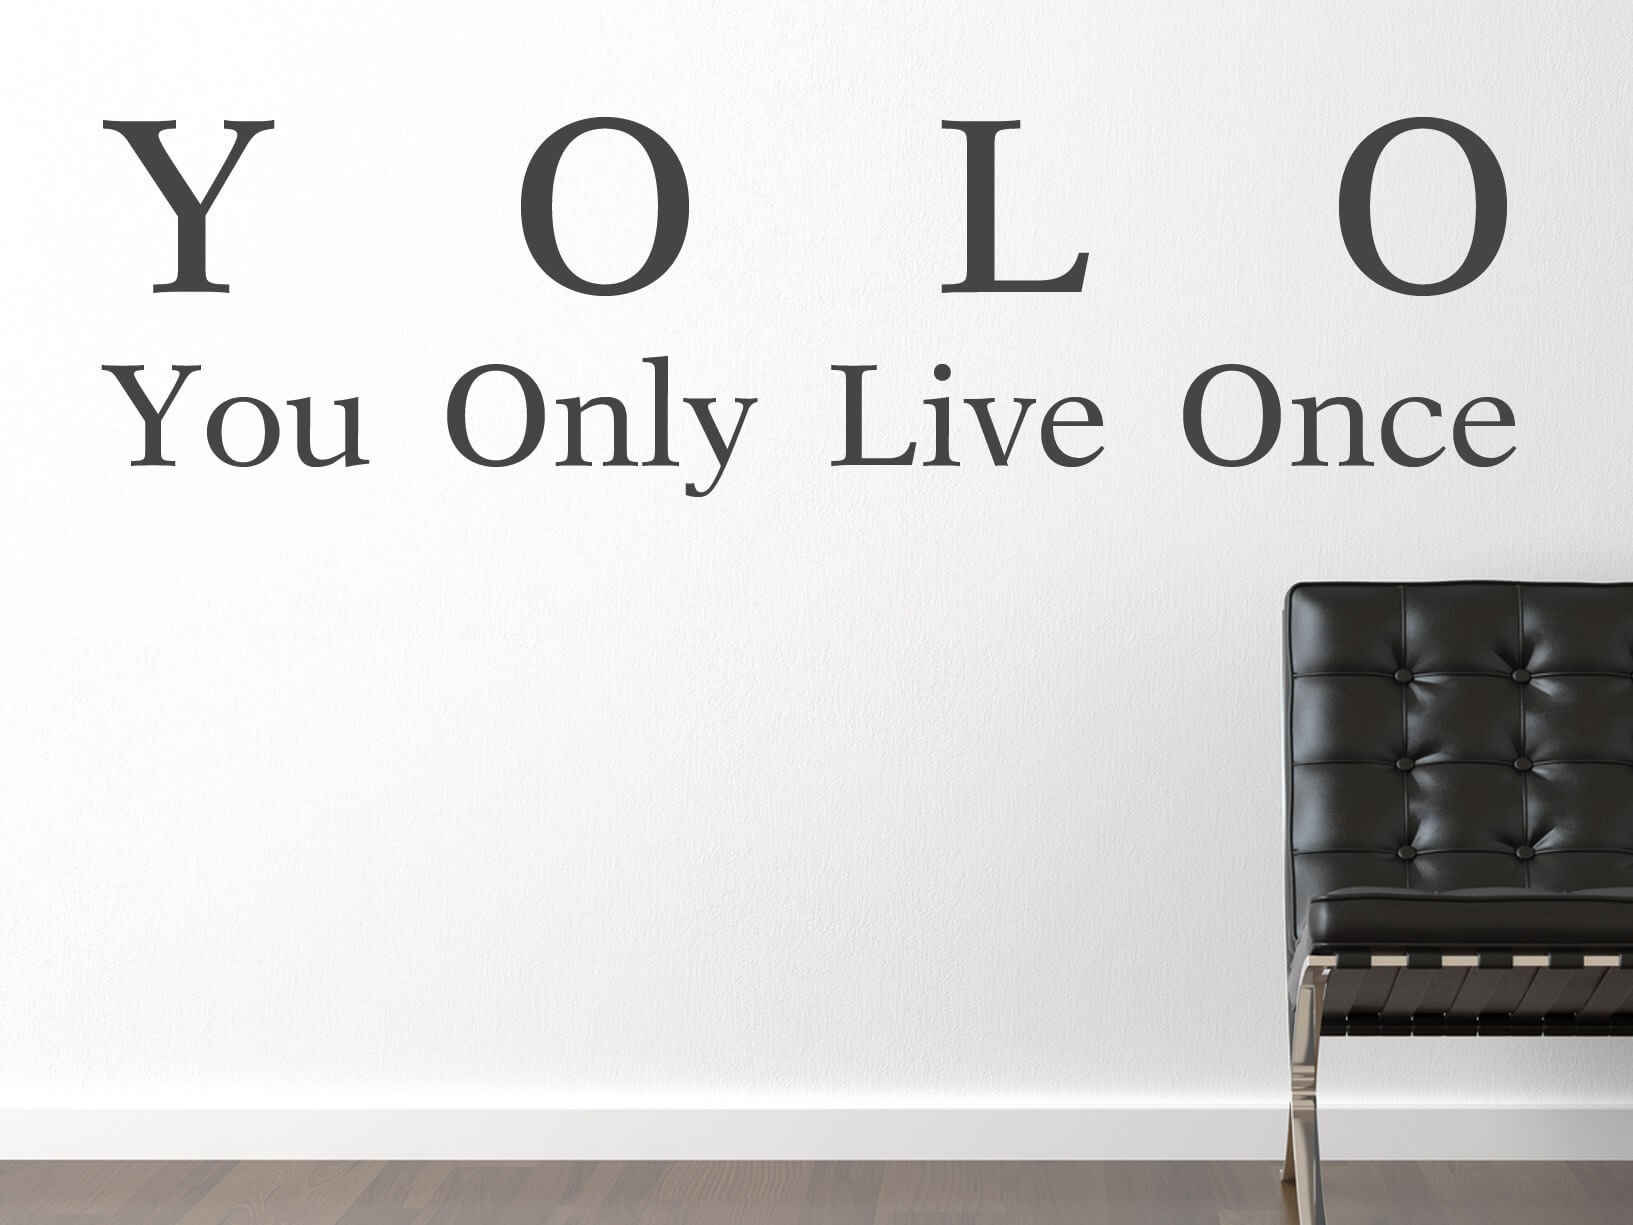 Muursticker YOLO You Only Live Once